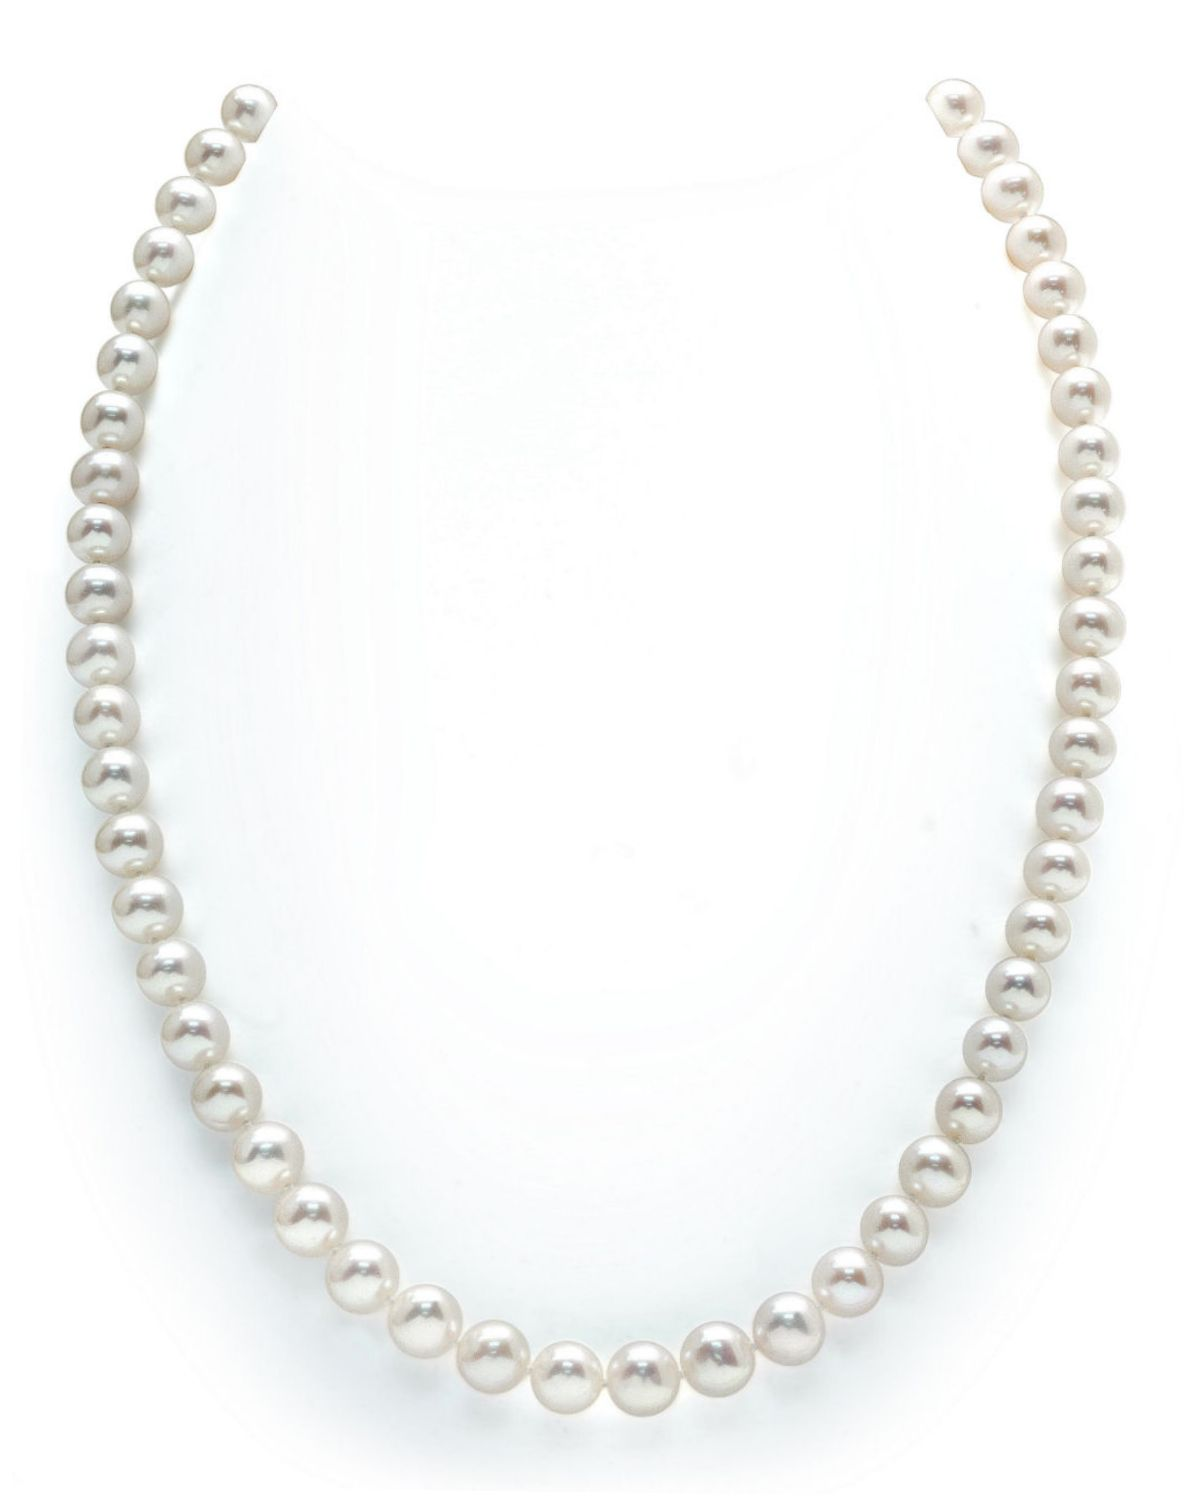 7-8mm White Freshwater Pearl Necklace - AAAA Quality